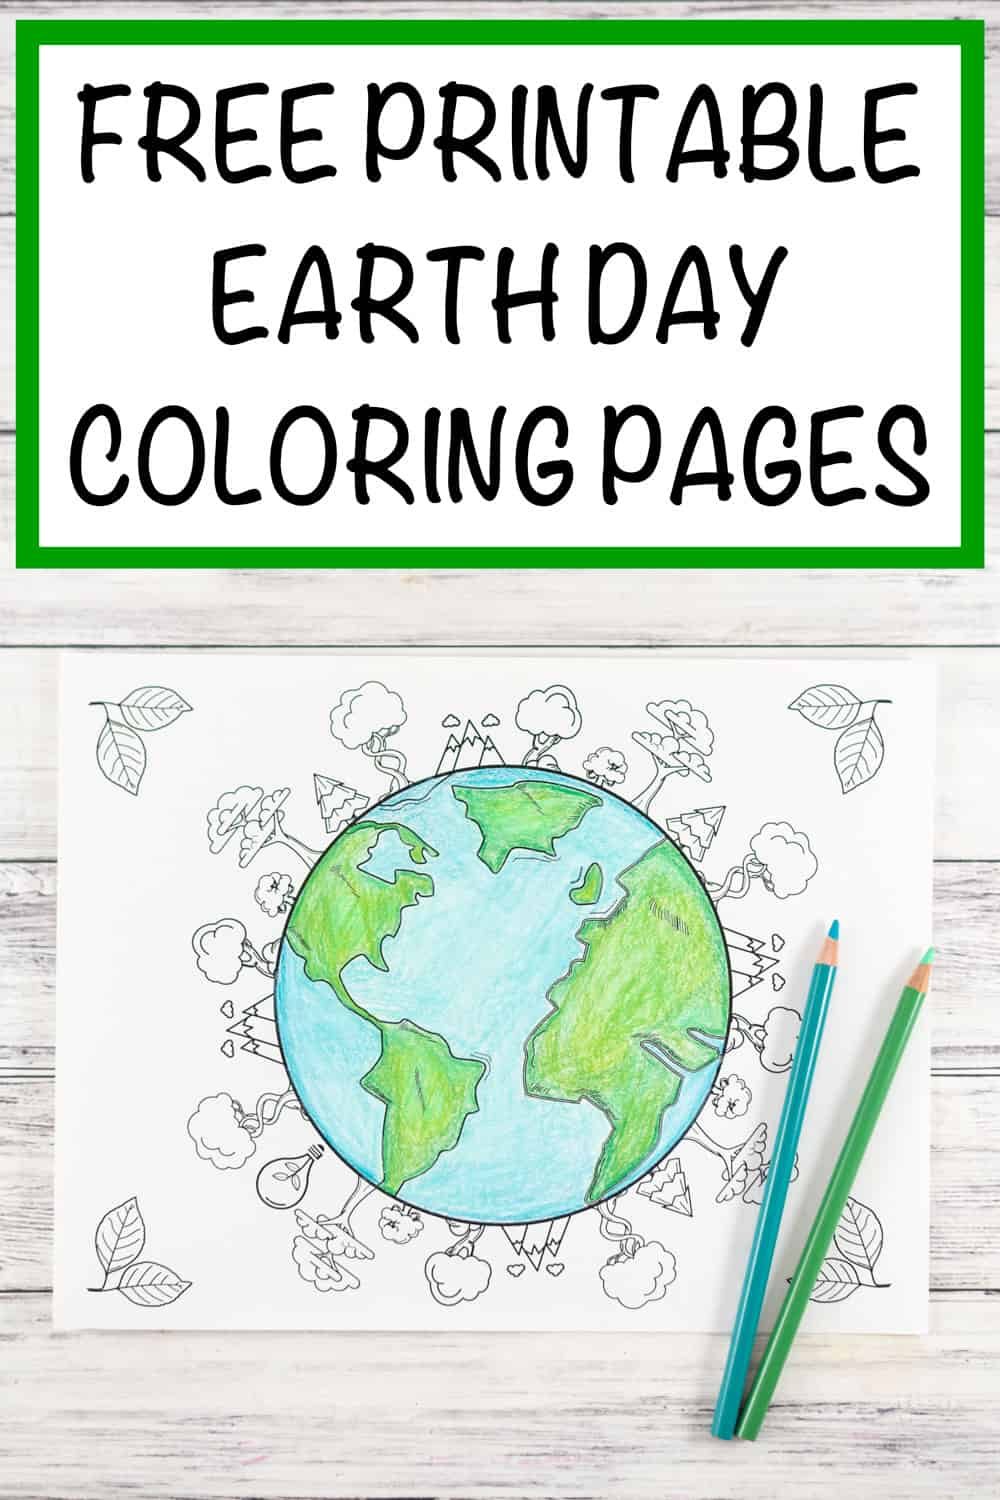 20+ Earth Day and Environmental Coloring Pages - The ...